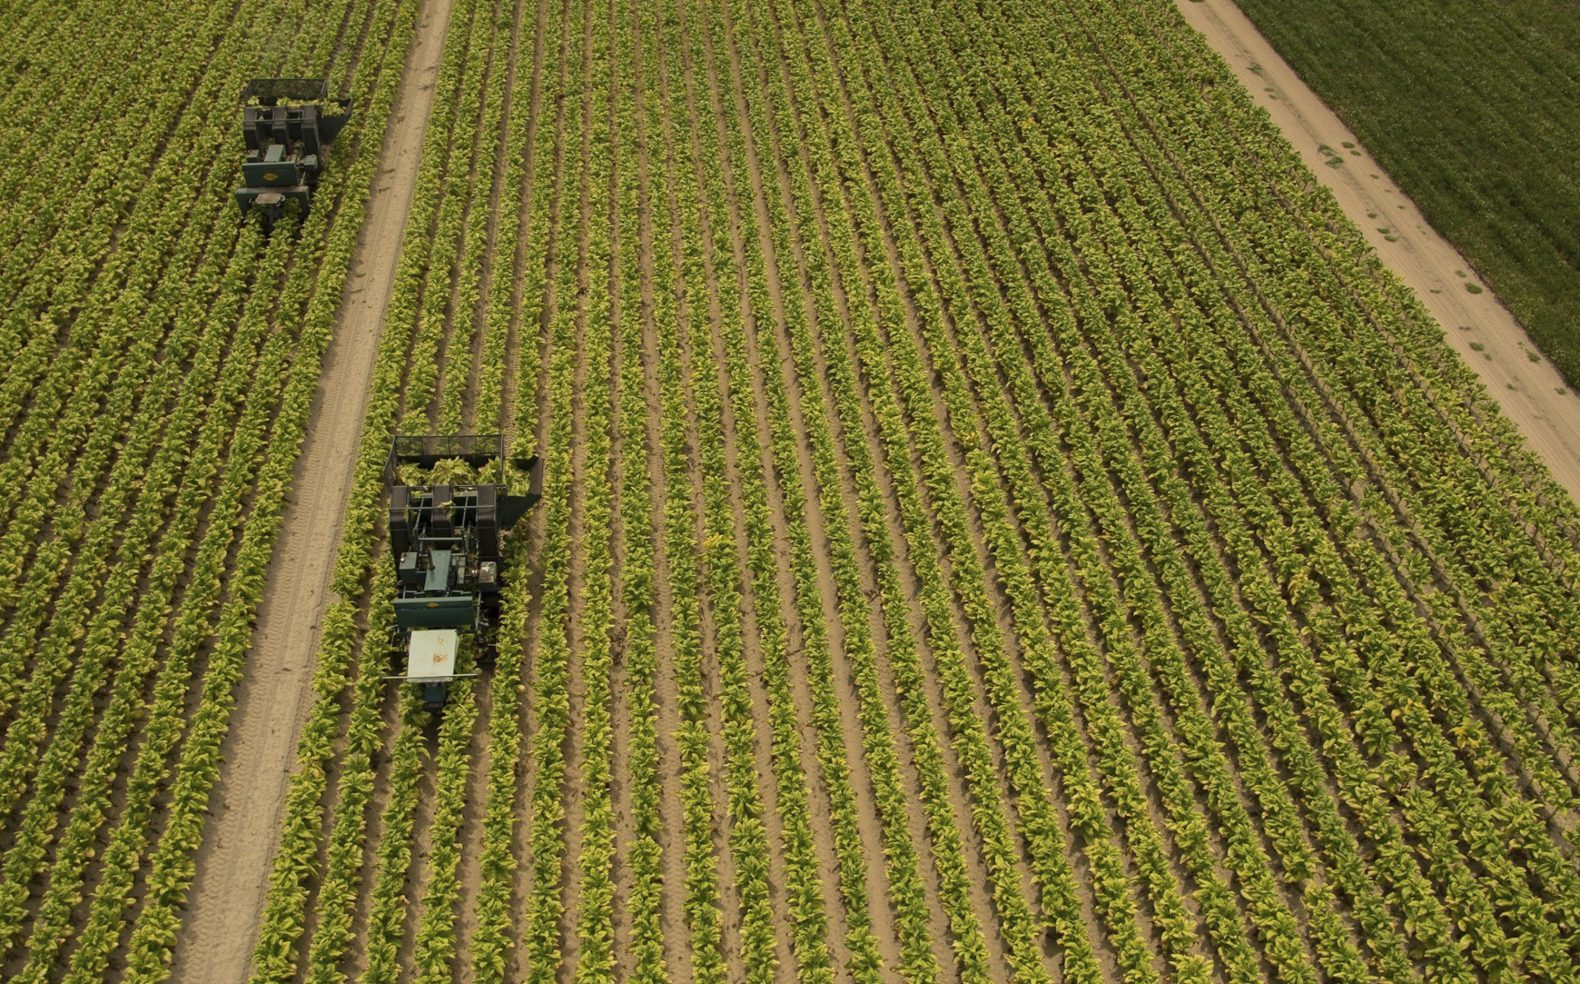 Aerial view of two farming vehicles going through a field of tobacco crops.